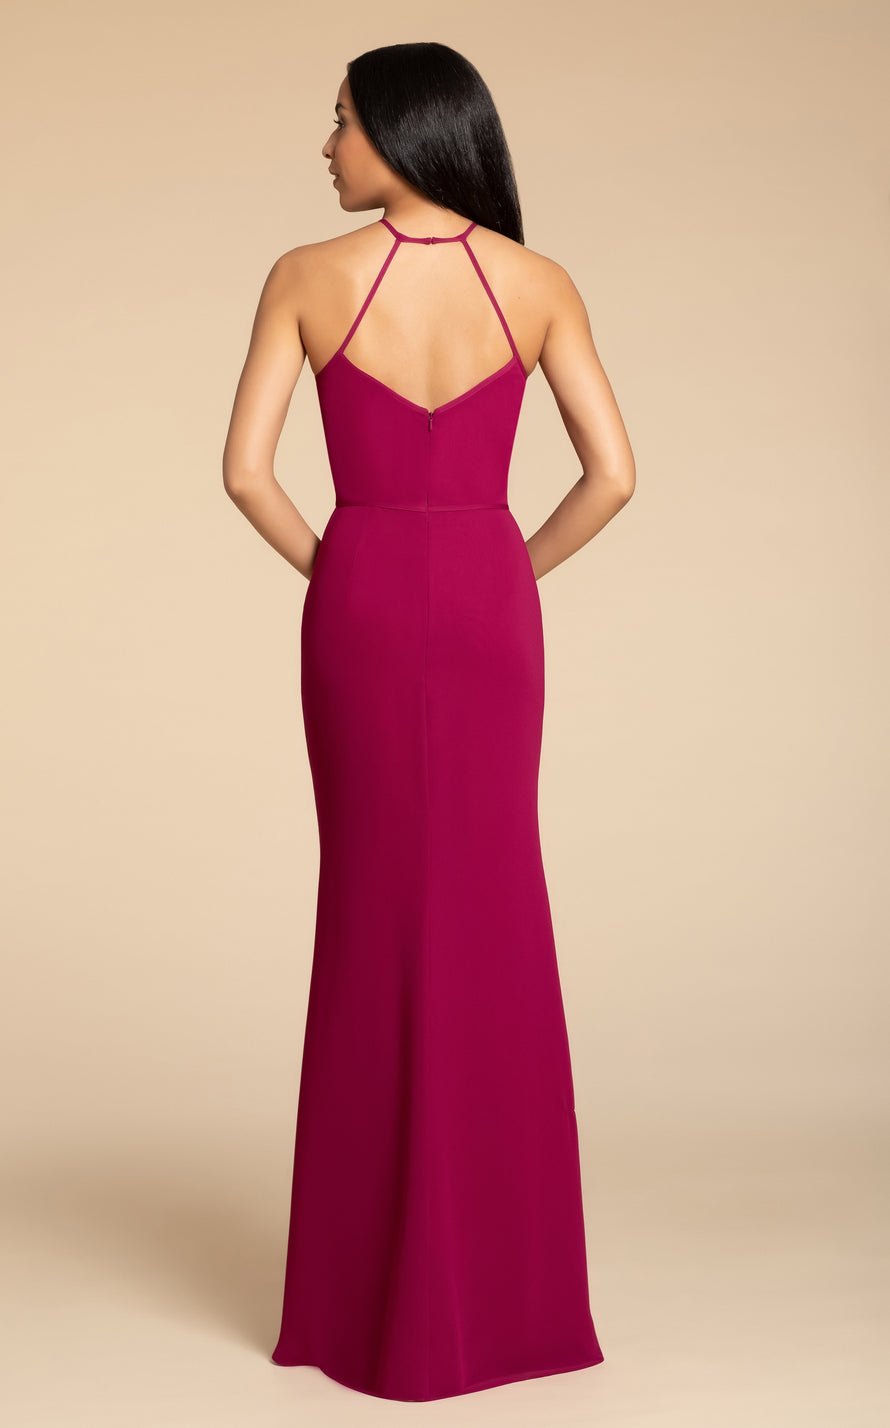 Hayley Paige Bridesmaid Dress Style 5911